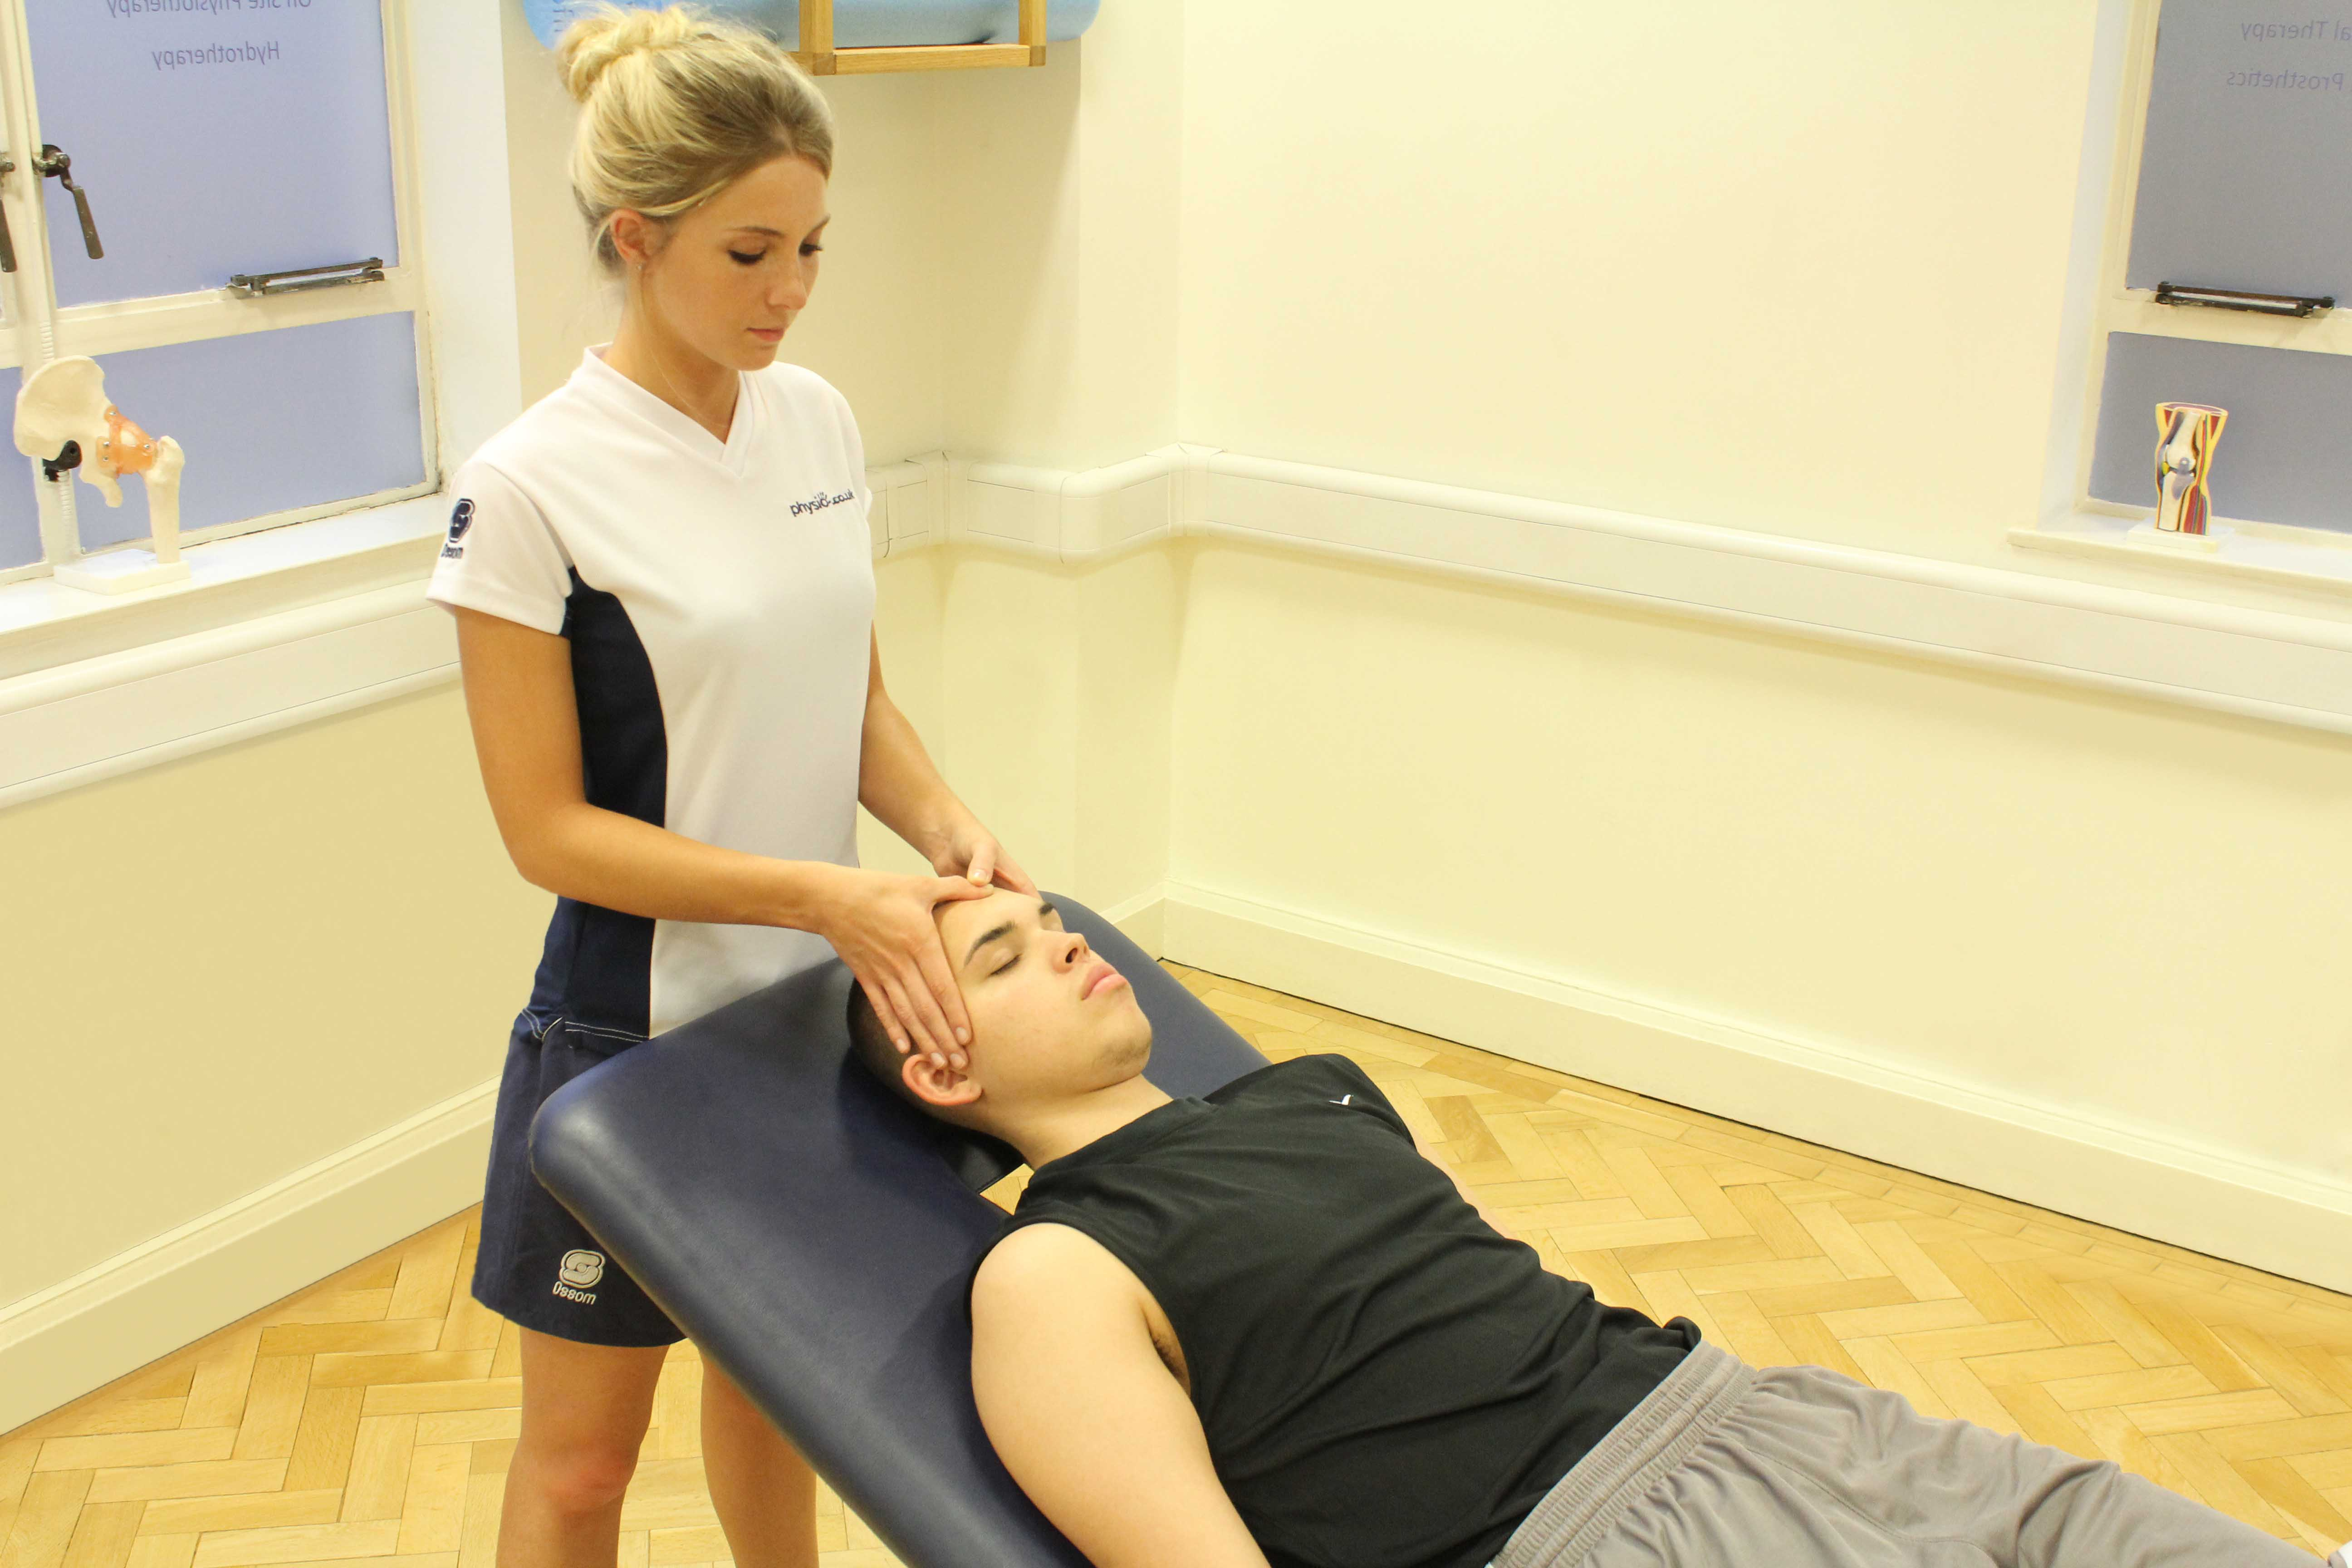 Head and neck massage to relieve stress, tension and anxiety. Performed by a specialist massage thersapist